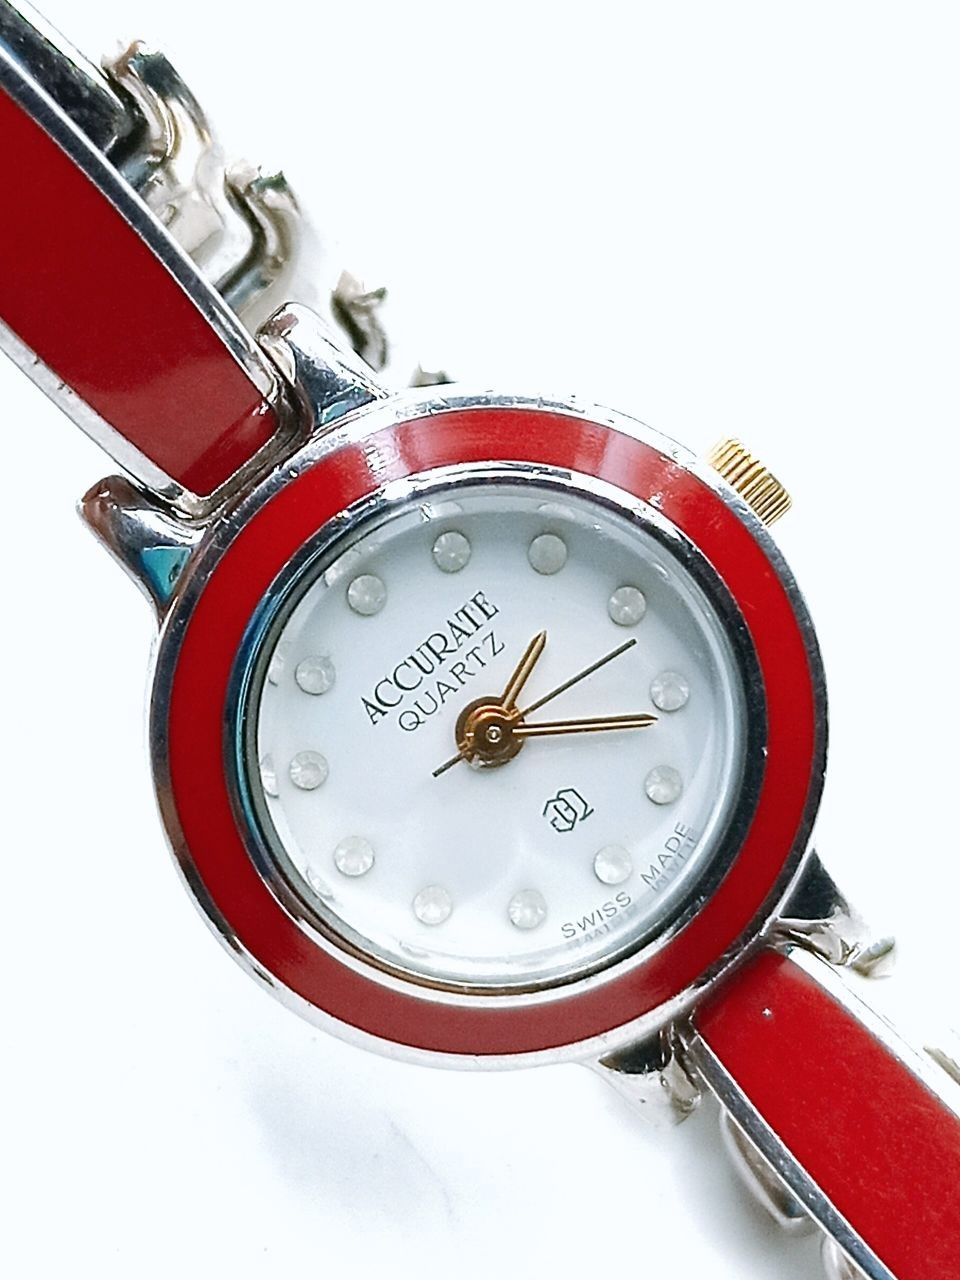 ACCURATE A160SM WATCH